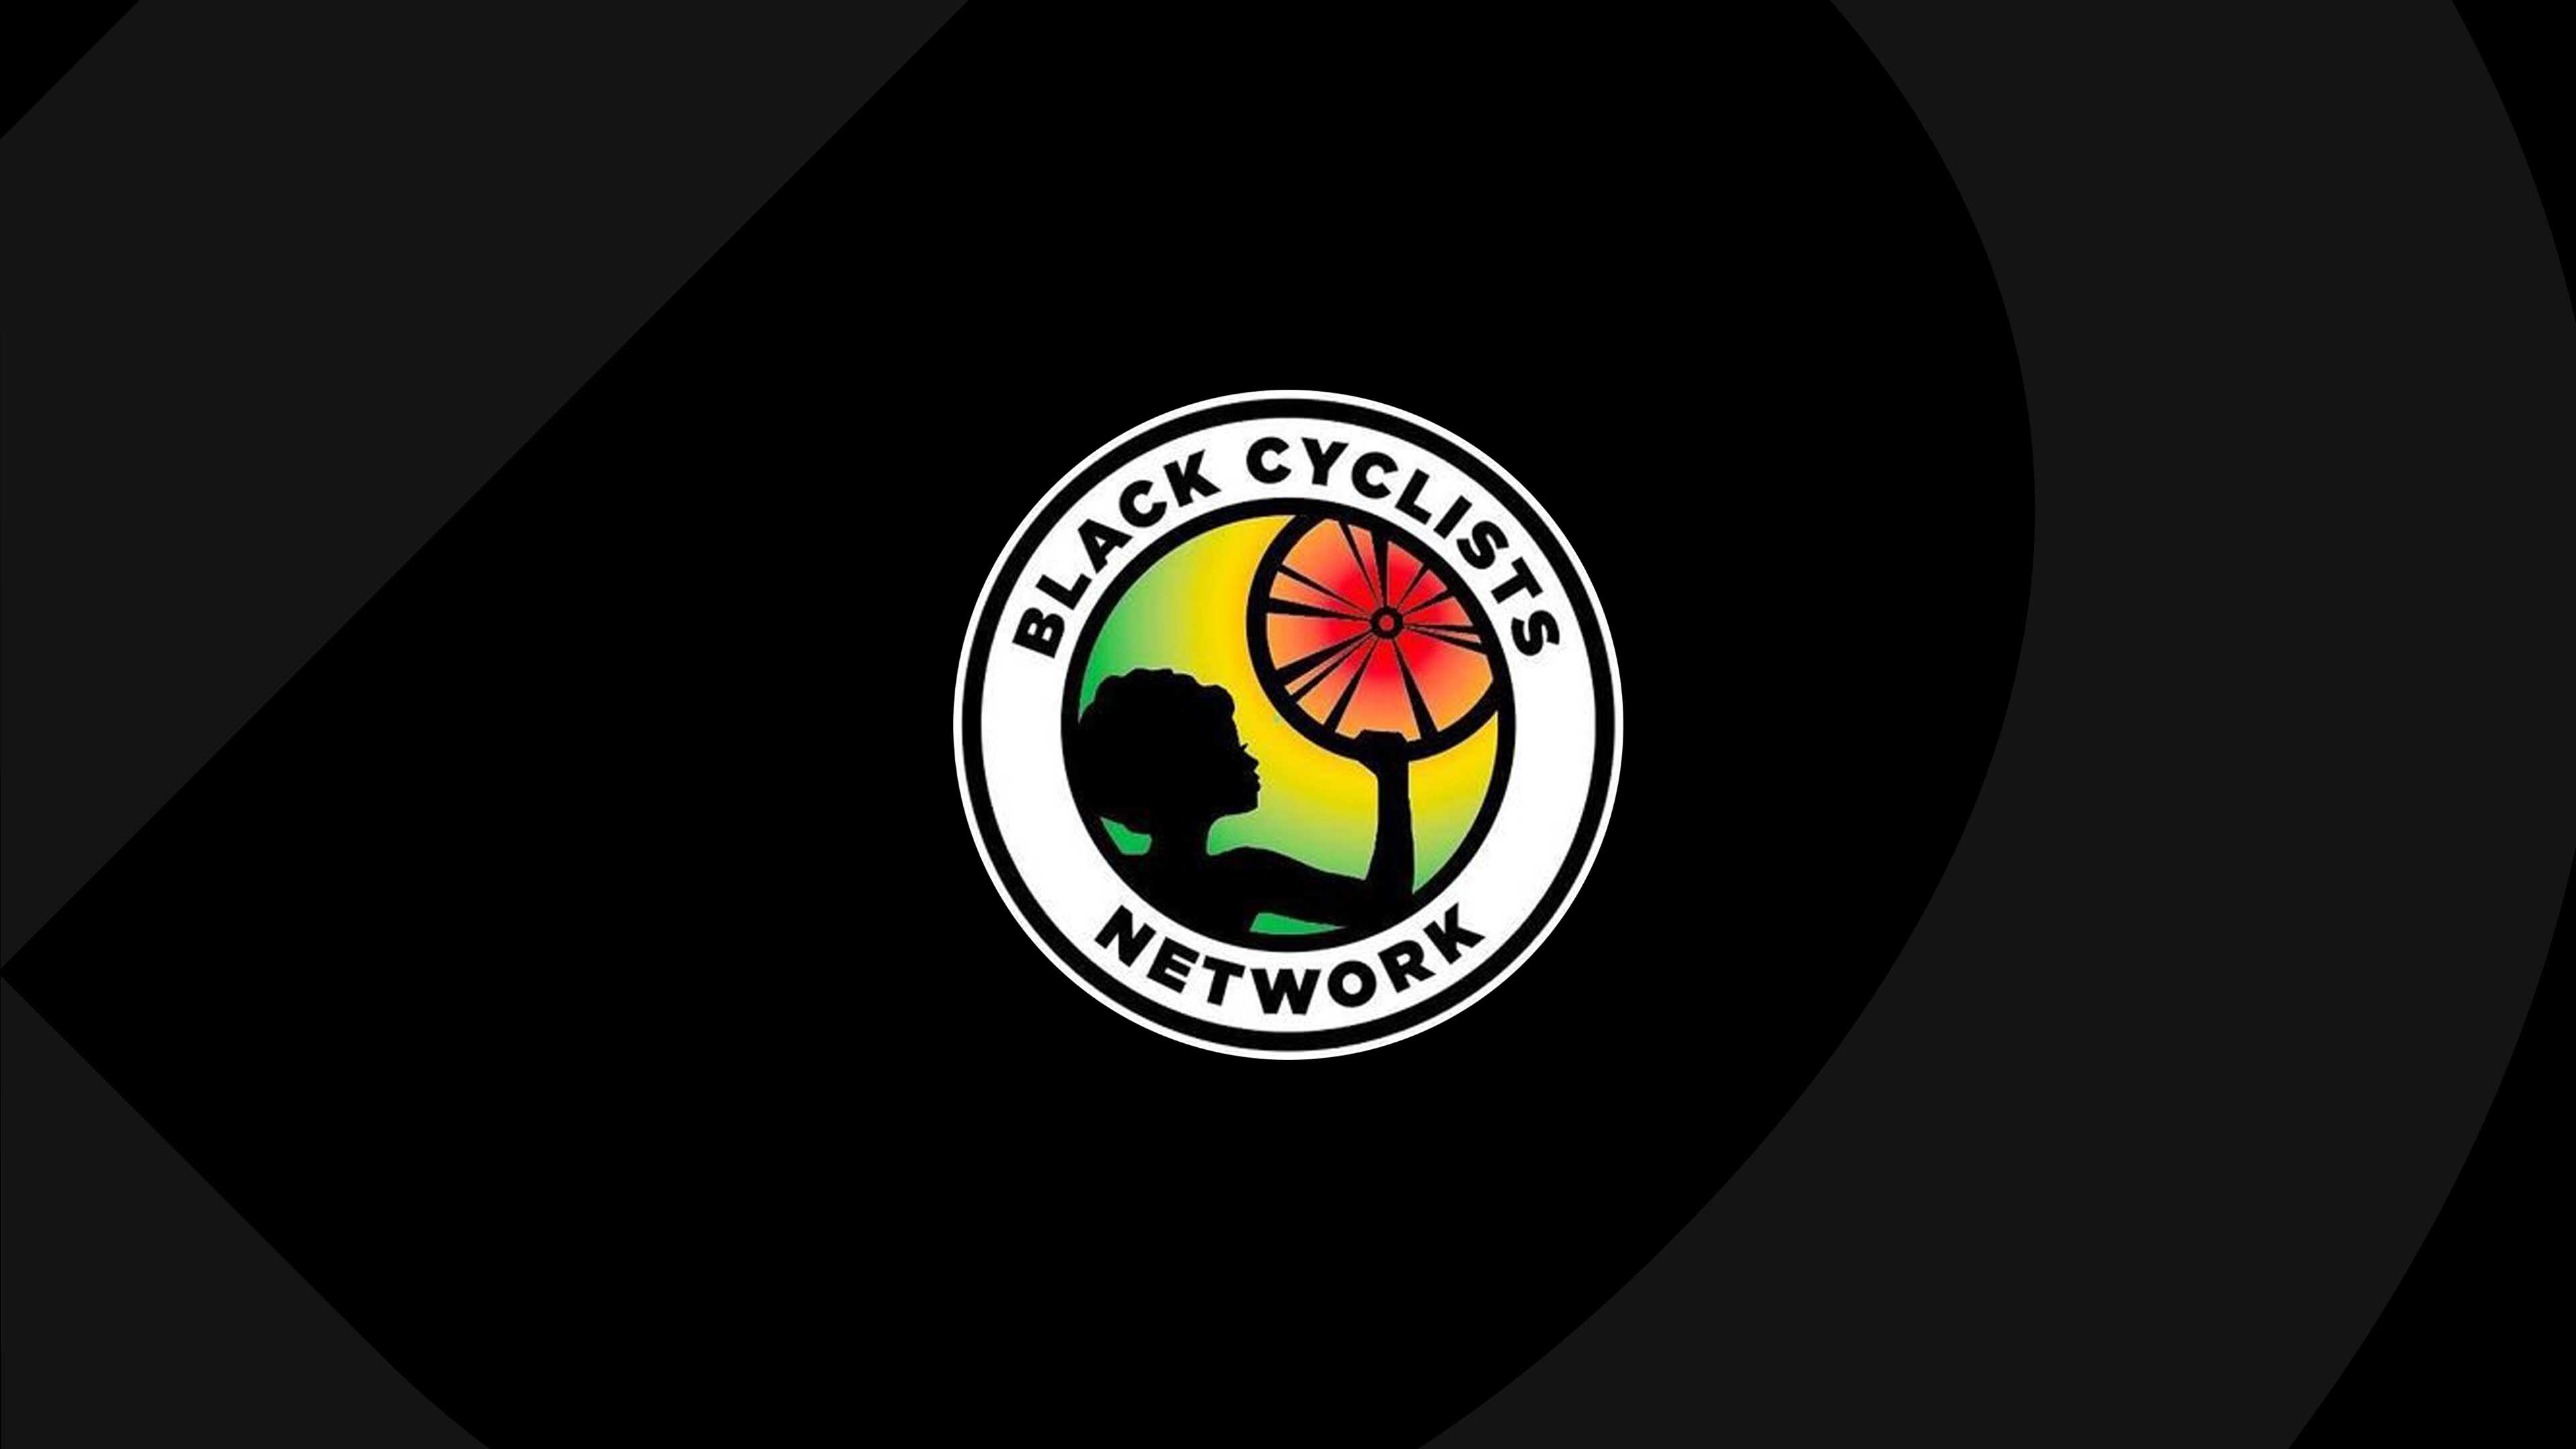 Black_Cyclists_NetworkBLOG_05.jpg